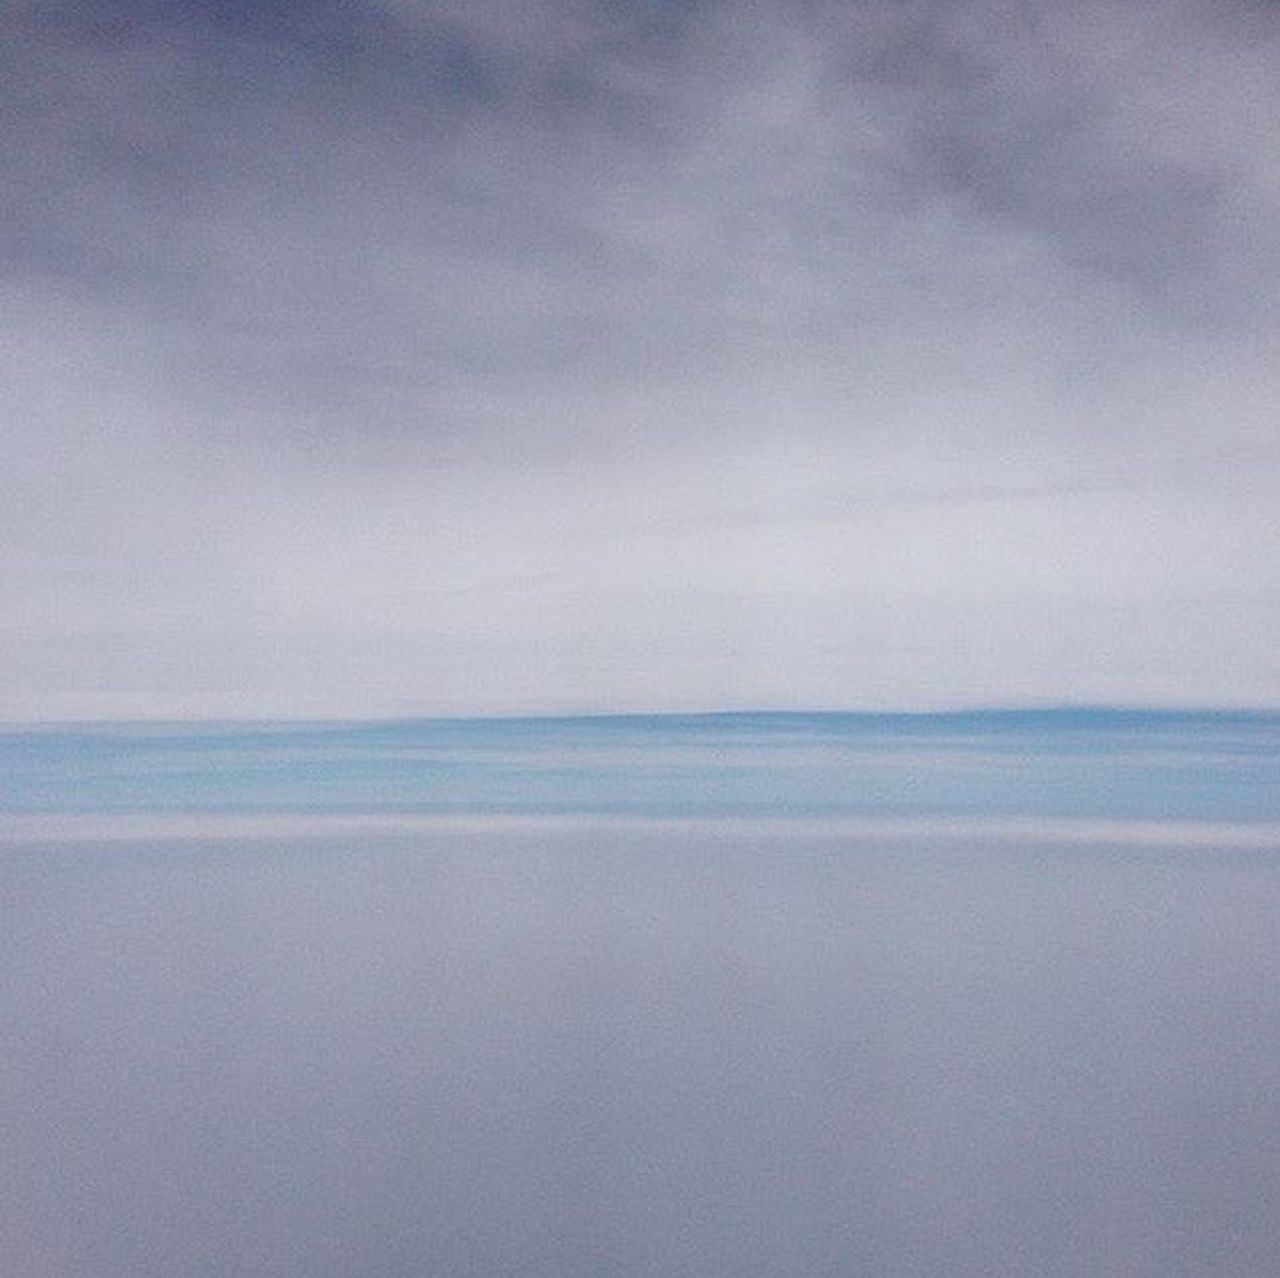 Sky view from airplane Atmosphere View From An Airplane There was an instant whereby clouds were upon clouds , sandwiching an illusional skyline . Clouds Atmosphere Ambience Ambience Photography Meiyo Meiyo Meiyo 没有没有 Meditation